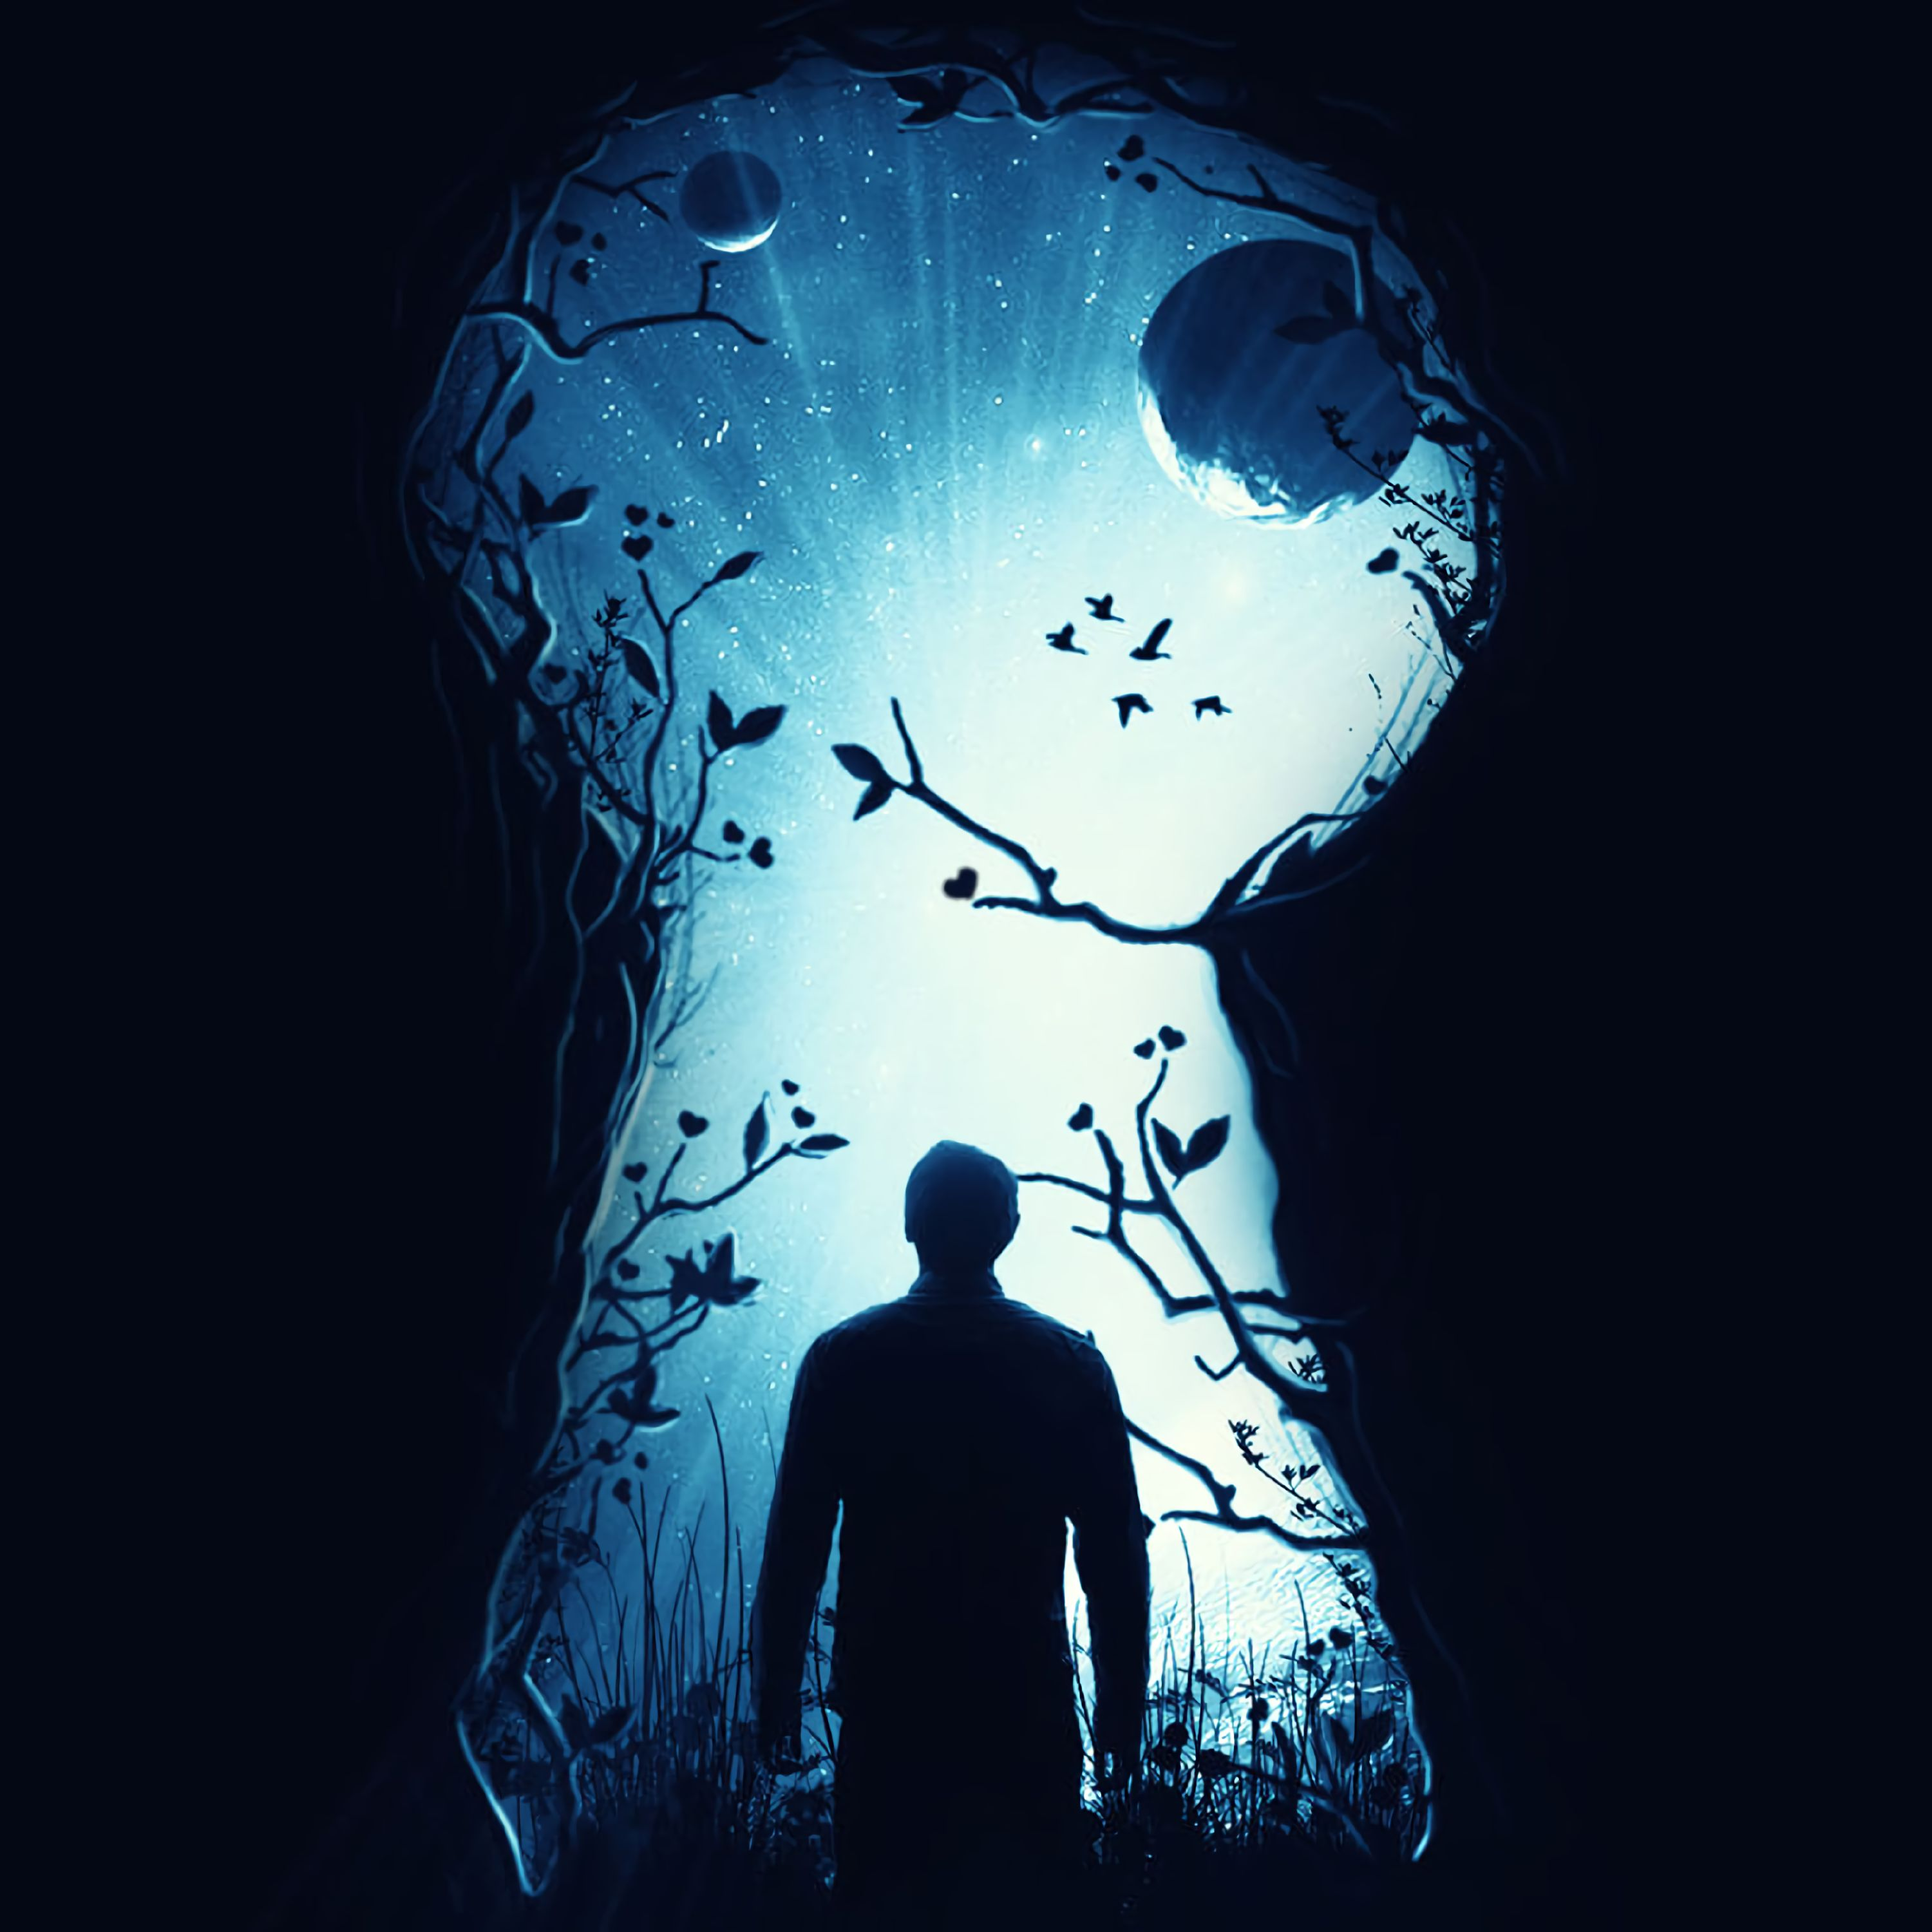 154530 download wallpaper Fantasy, Art, Dark, Silhouette, Keyhole screensavers and pictures for free